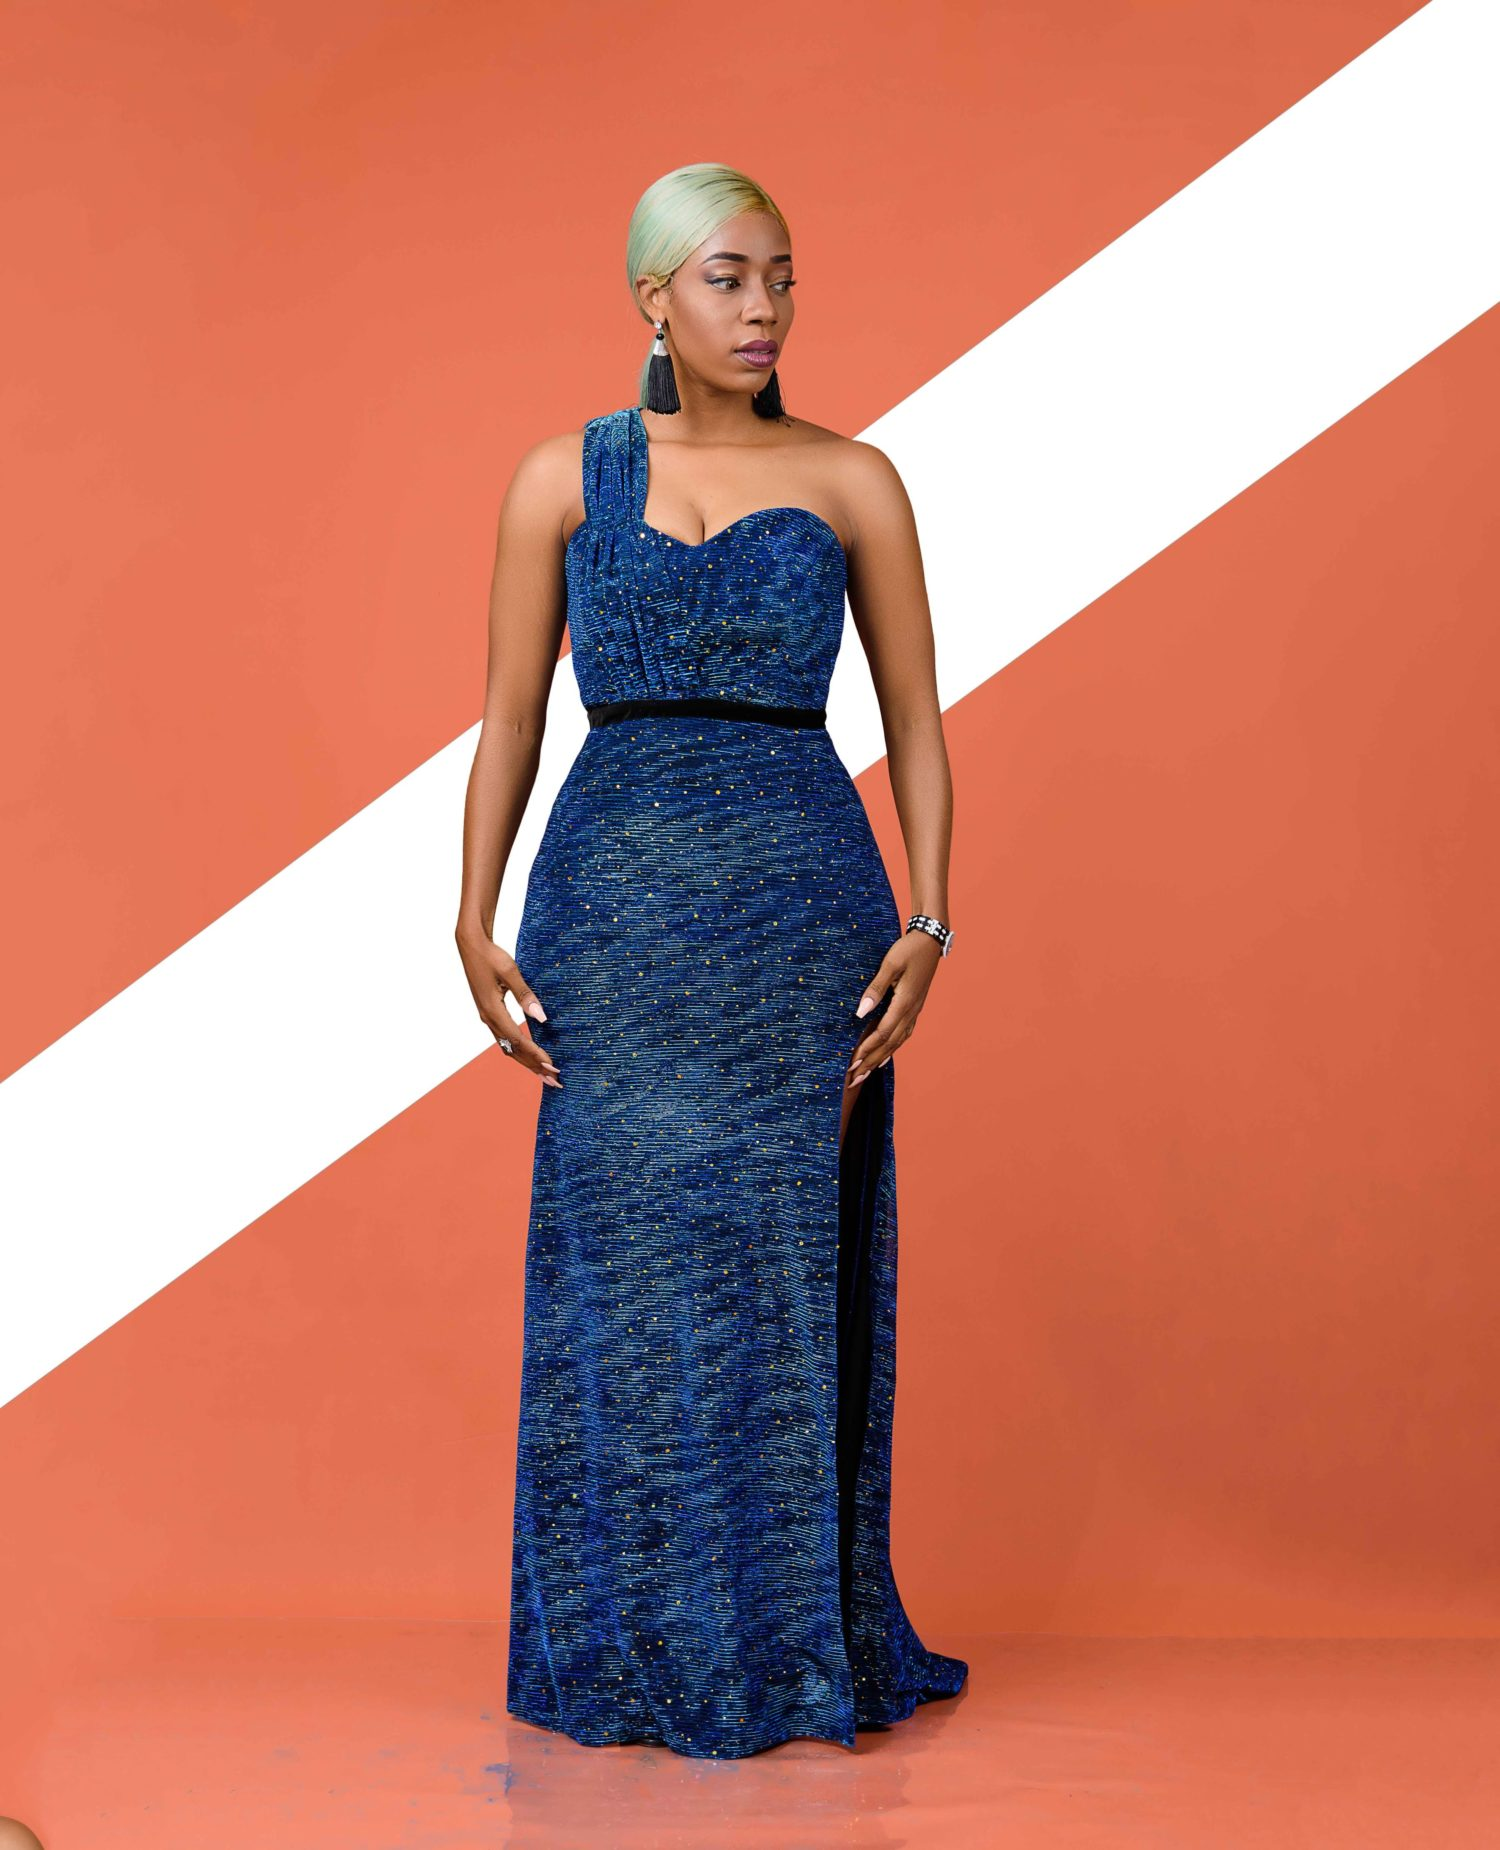 Trish O Couture's Latest Collection Will Resonate With Stylish Women Everywhere!